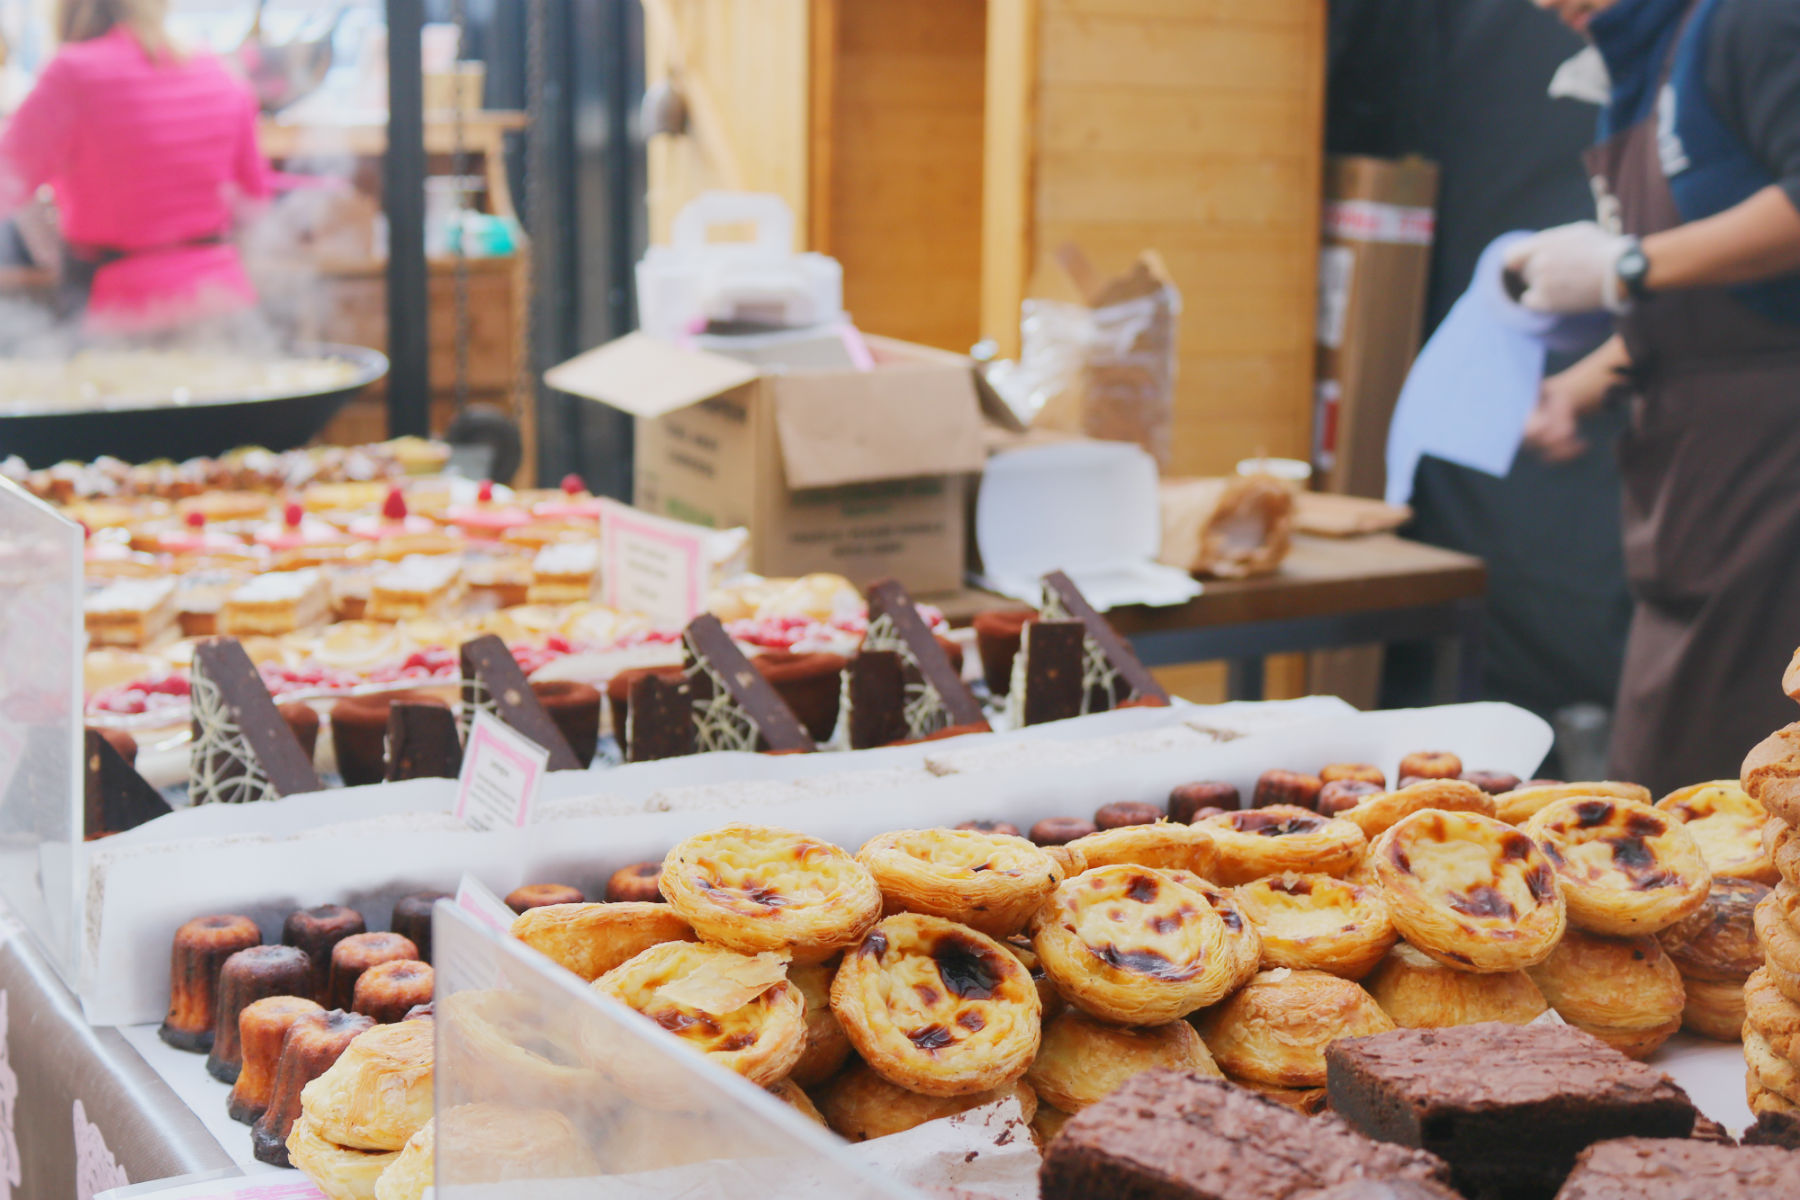 Cake stall, Maltby Street Market